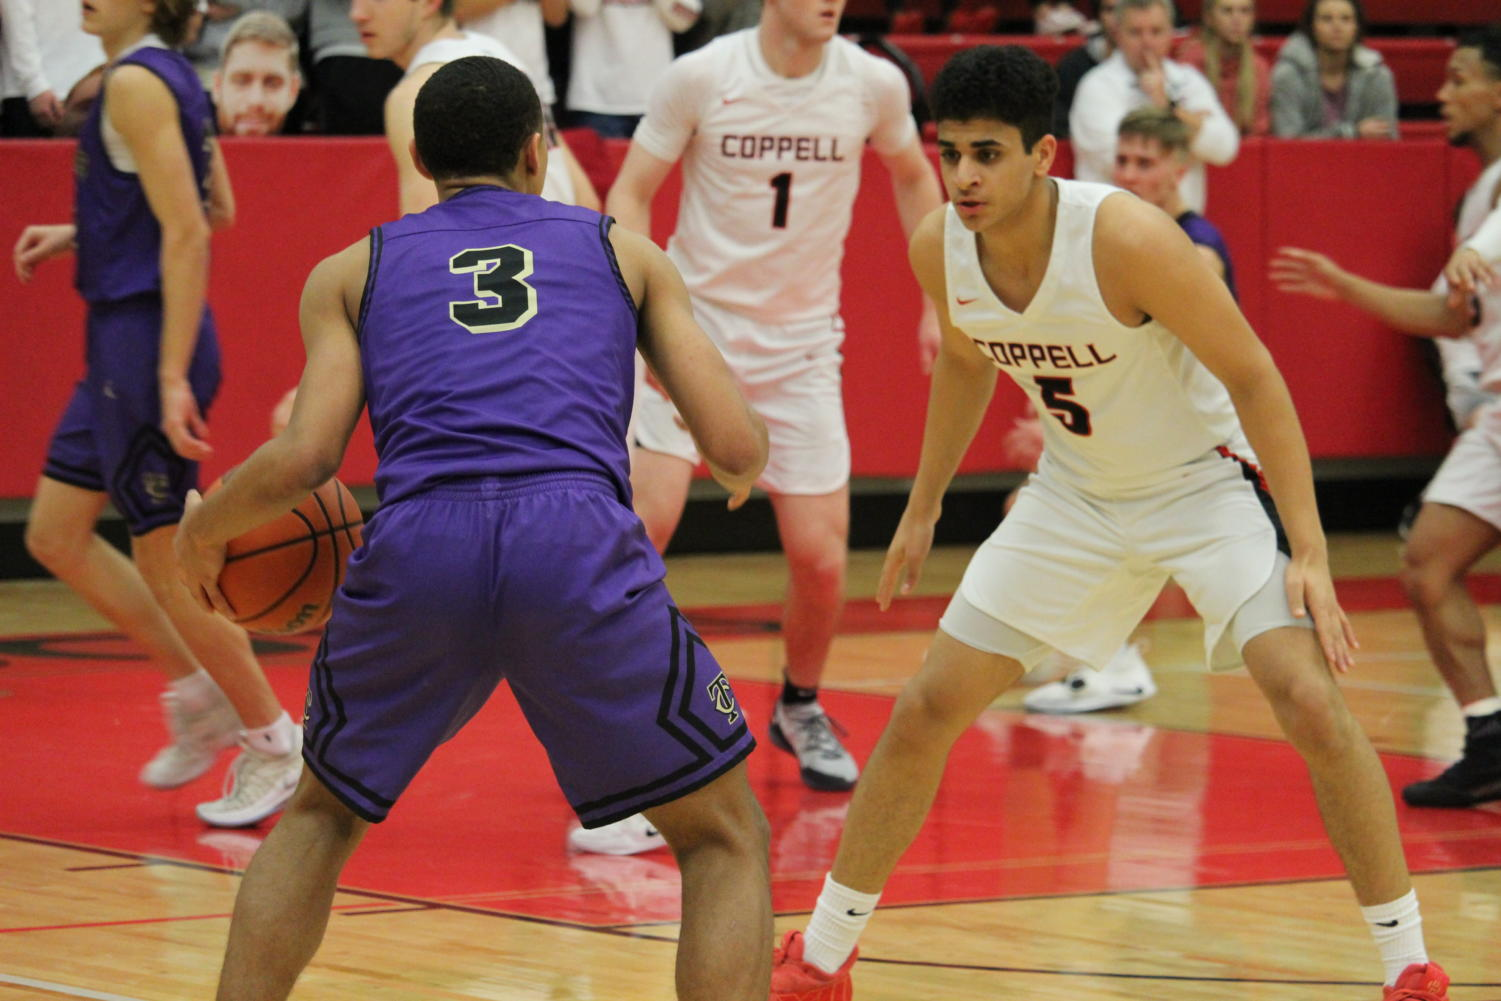 Coppell junior Adam Moussa guards the ball against Keller Timber Creek on Feb. 19, at CHS Arena. Moussa shot a three in the final 20 seconds of the BI-District Playoffs to send the Cowboys to a 53-51 win. The Cowboys are moving on to the Championship against Lake Ridge on Feb. 21.